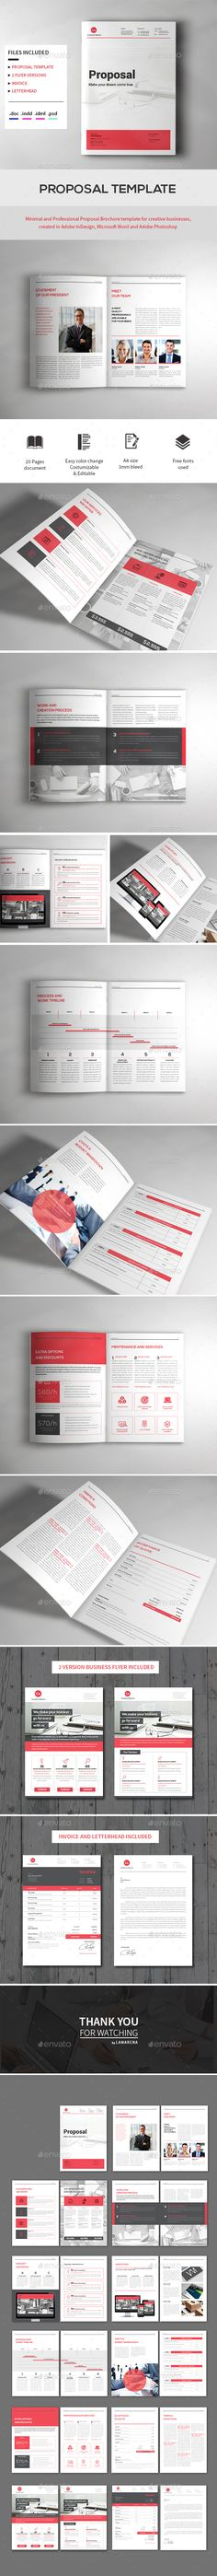 Proposal - #Proposals & Invoices Stationery Download here: https://graphicriver.net/item/proposal/17213453?ref=classicdesignp